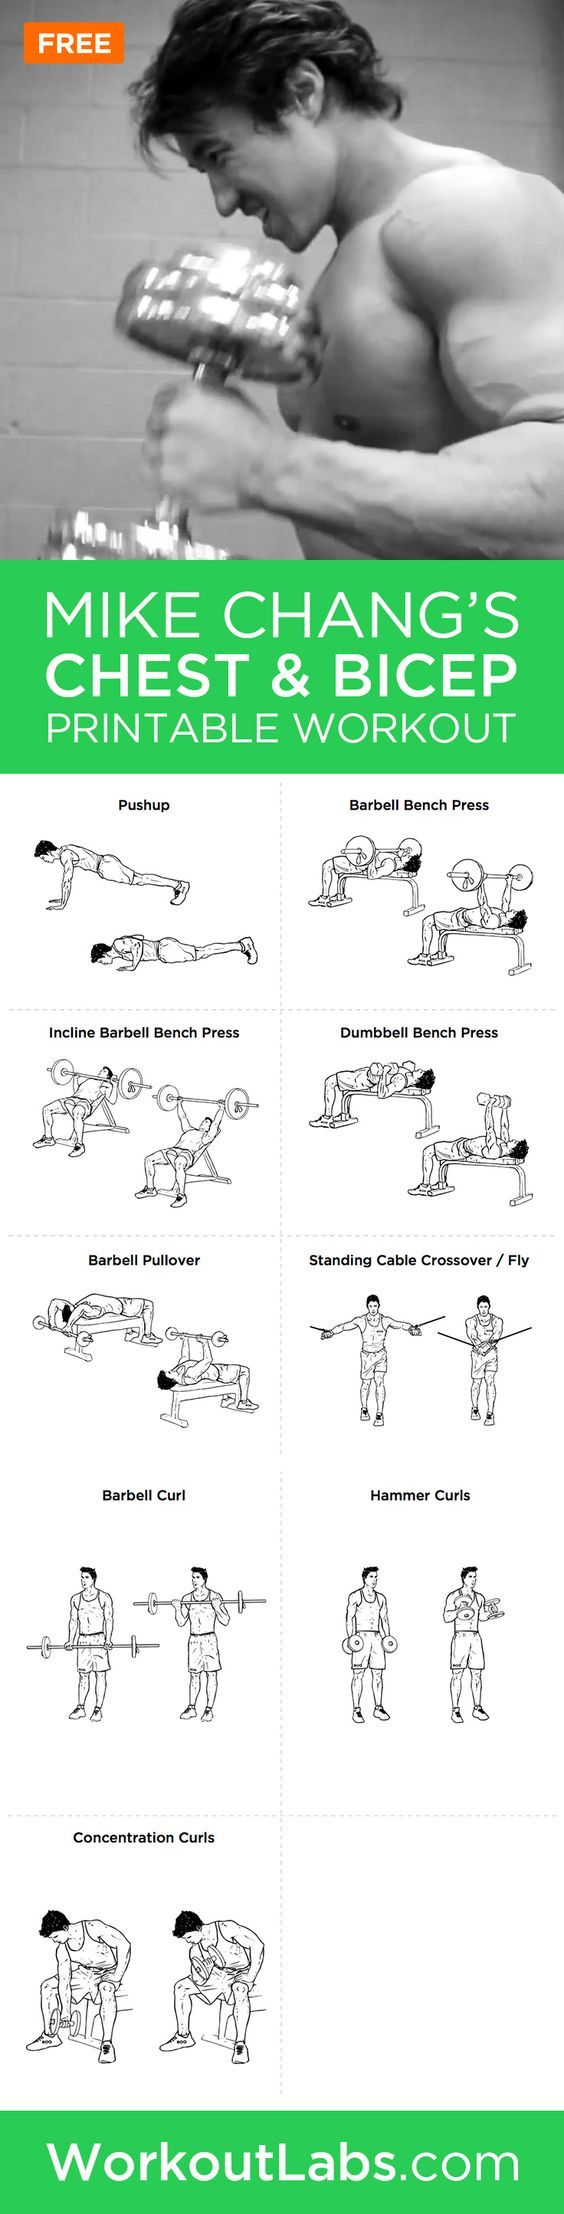 Mike Chang's Actual Chest And Bicep Workout – Mike Chang's actual chest and bicep workout featuring the exercises you will need to build the ripped chest and biceps that you've always wanted.: